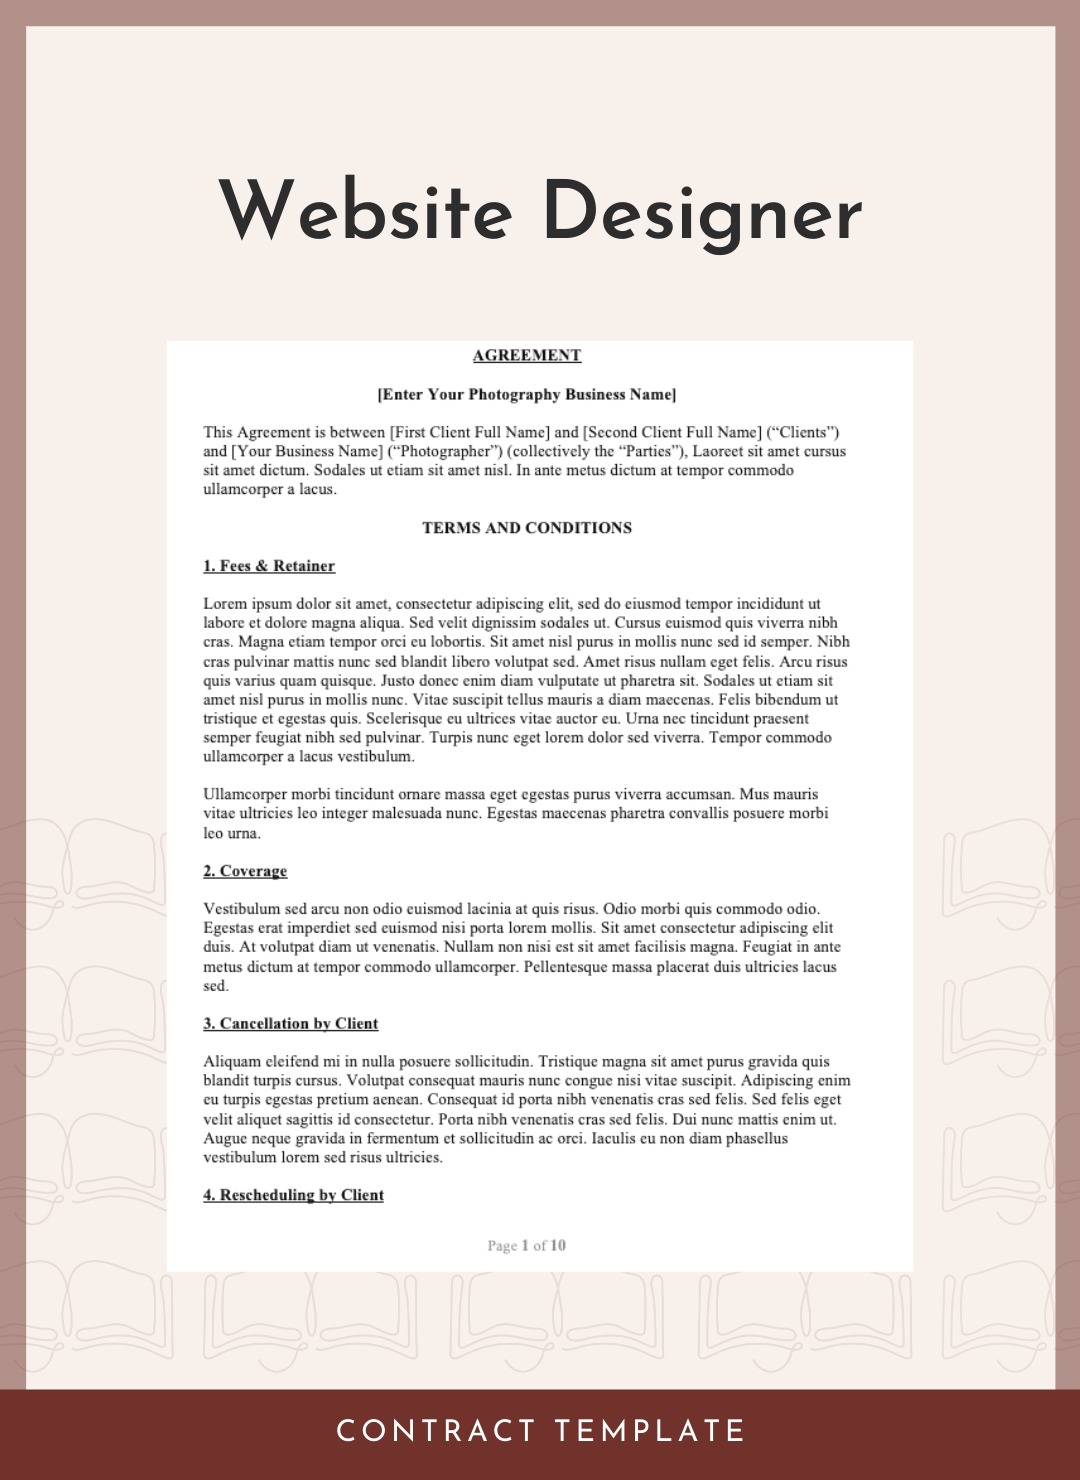 Website Designer Contract